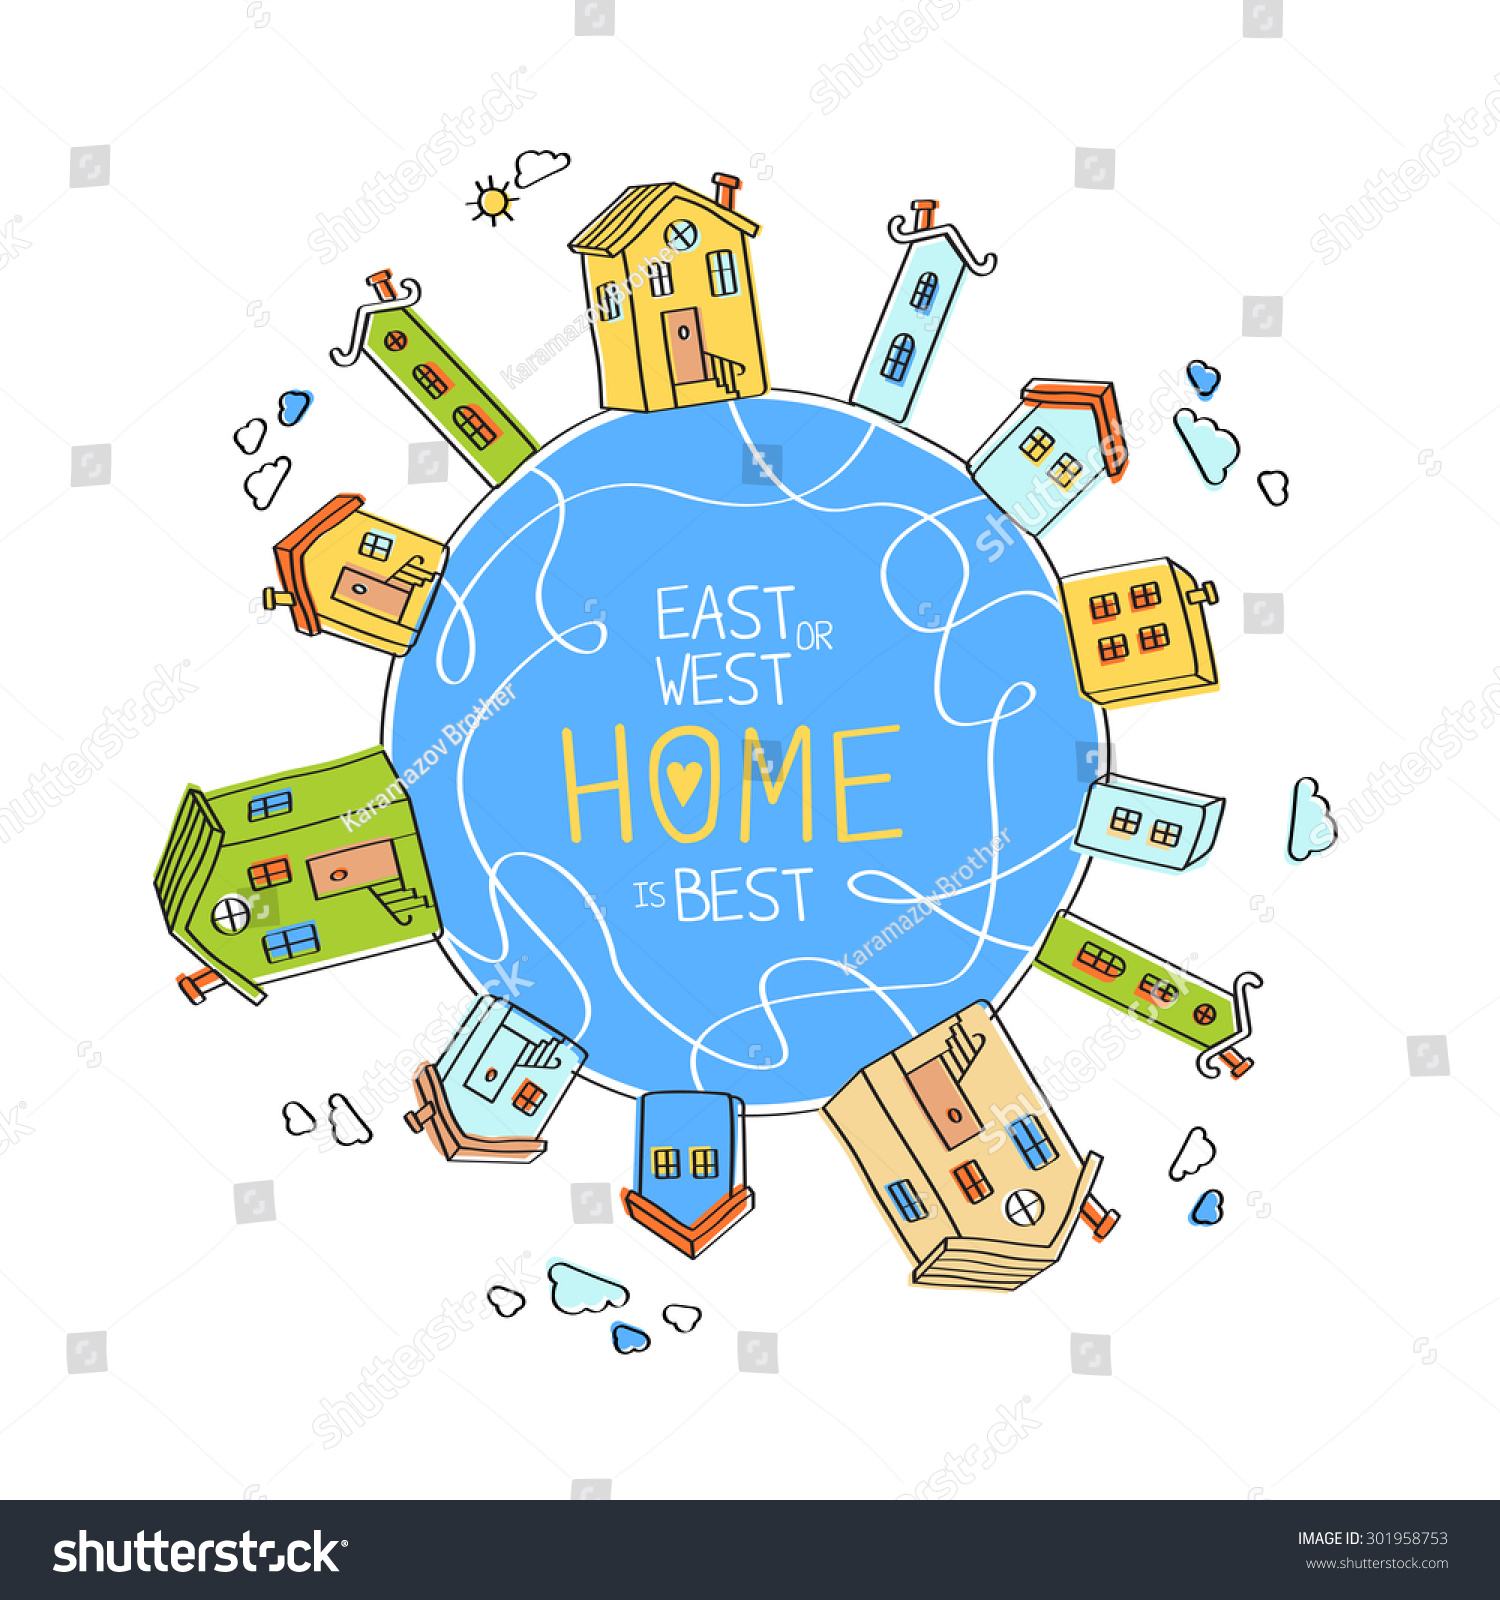 east or west home is best East, west, north, and south / north, east, south and west east, west/wherever you go, home is best you can't go wrong with that tehtmc, apr 19 home top.